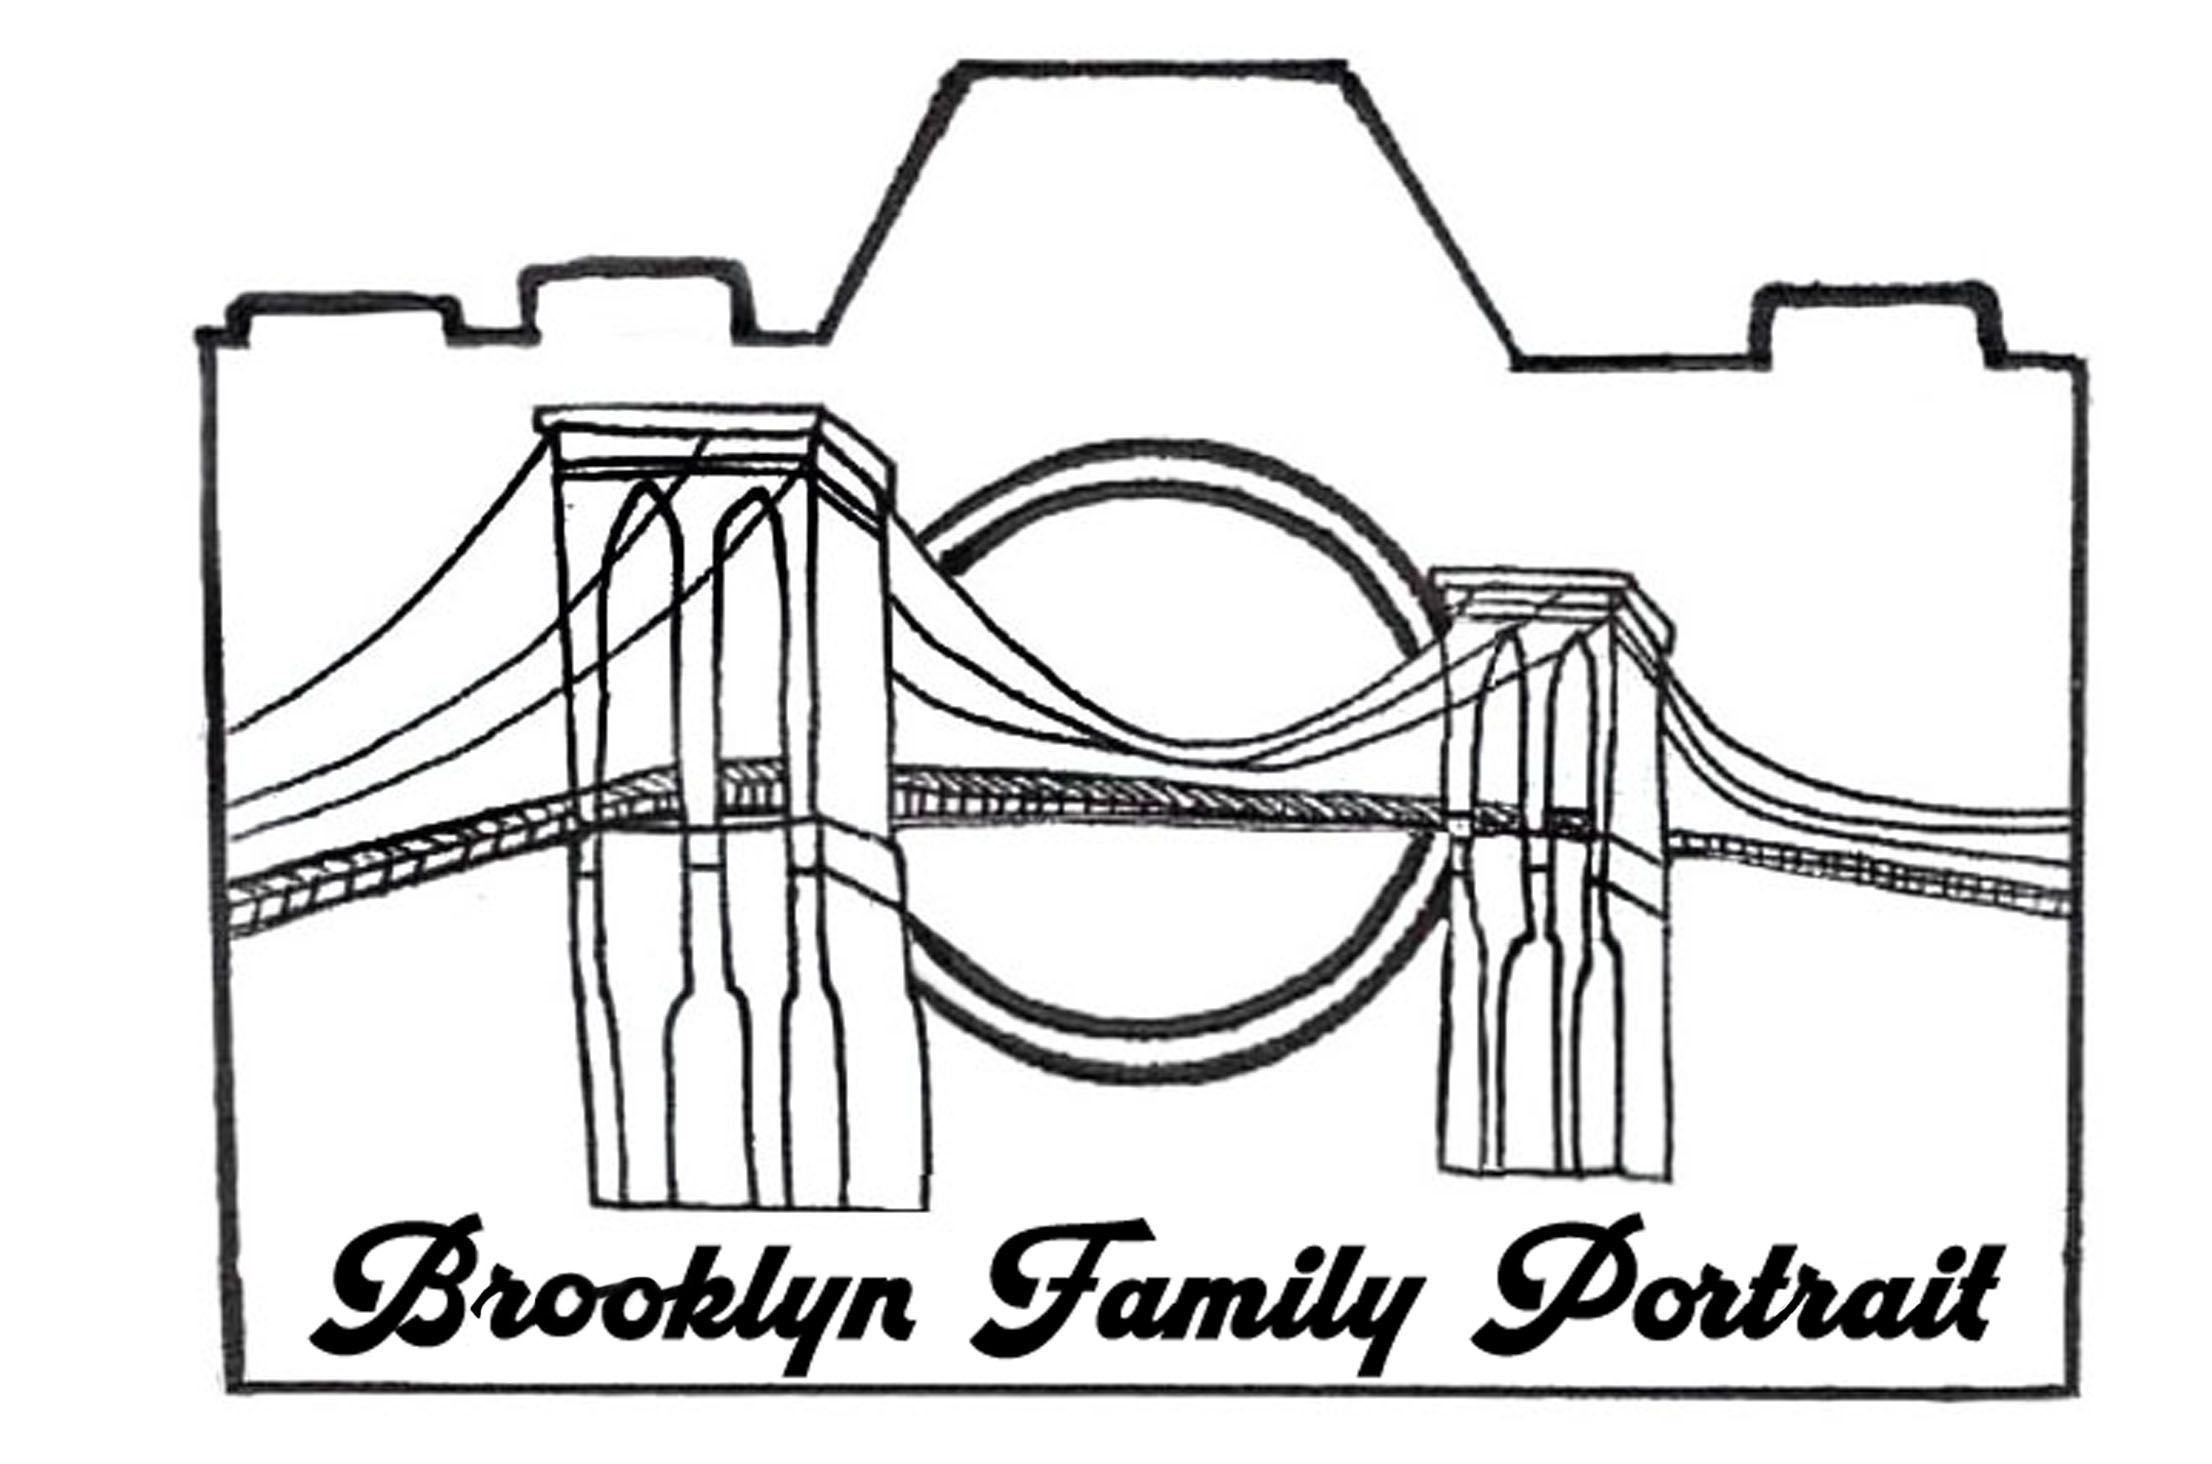 Brooklyn Family Portrait